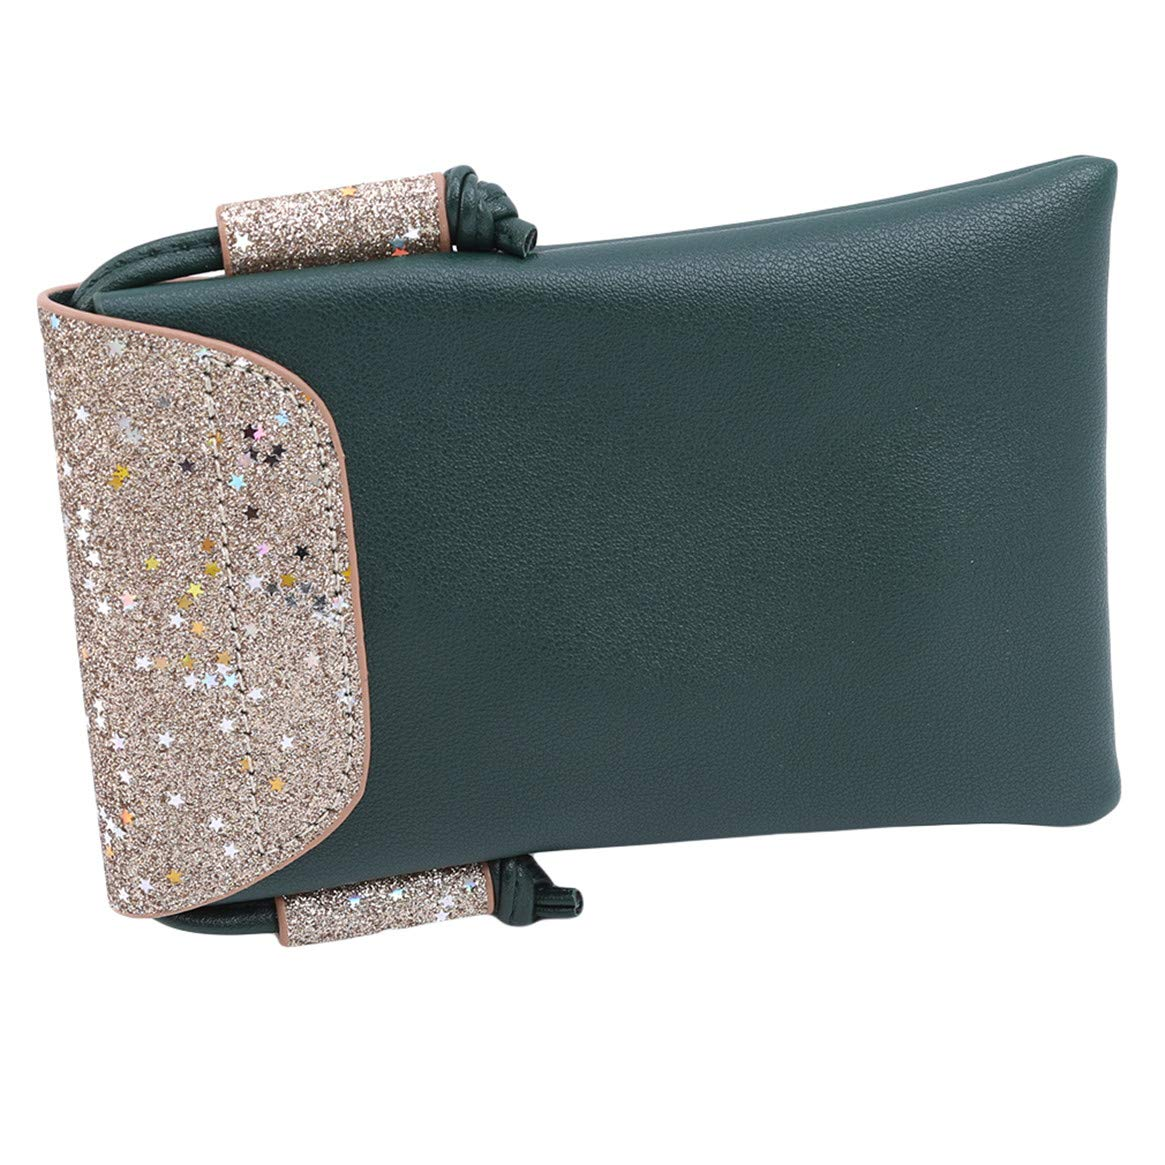 WEIHEE Cell Phone Bag Multipurpose PU Leather Carrying Cases Satchel Bag Shoulder Crossbody Bag